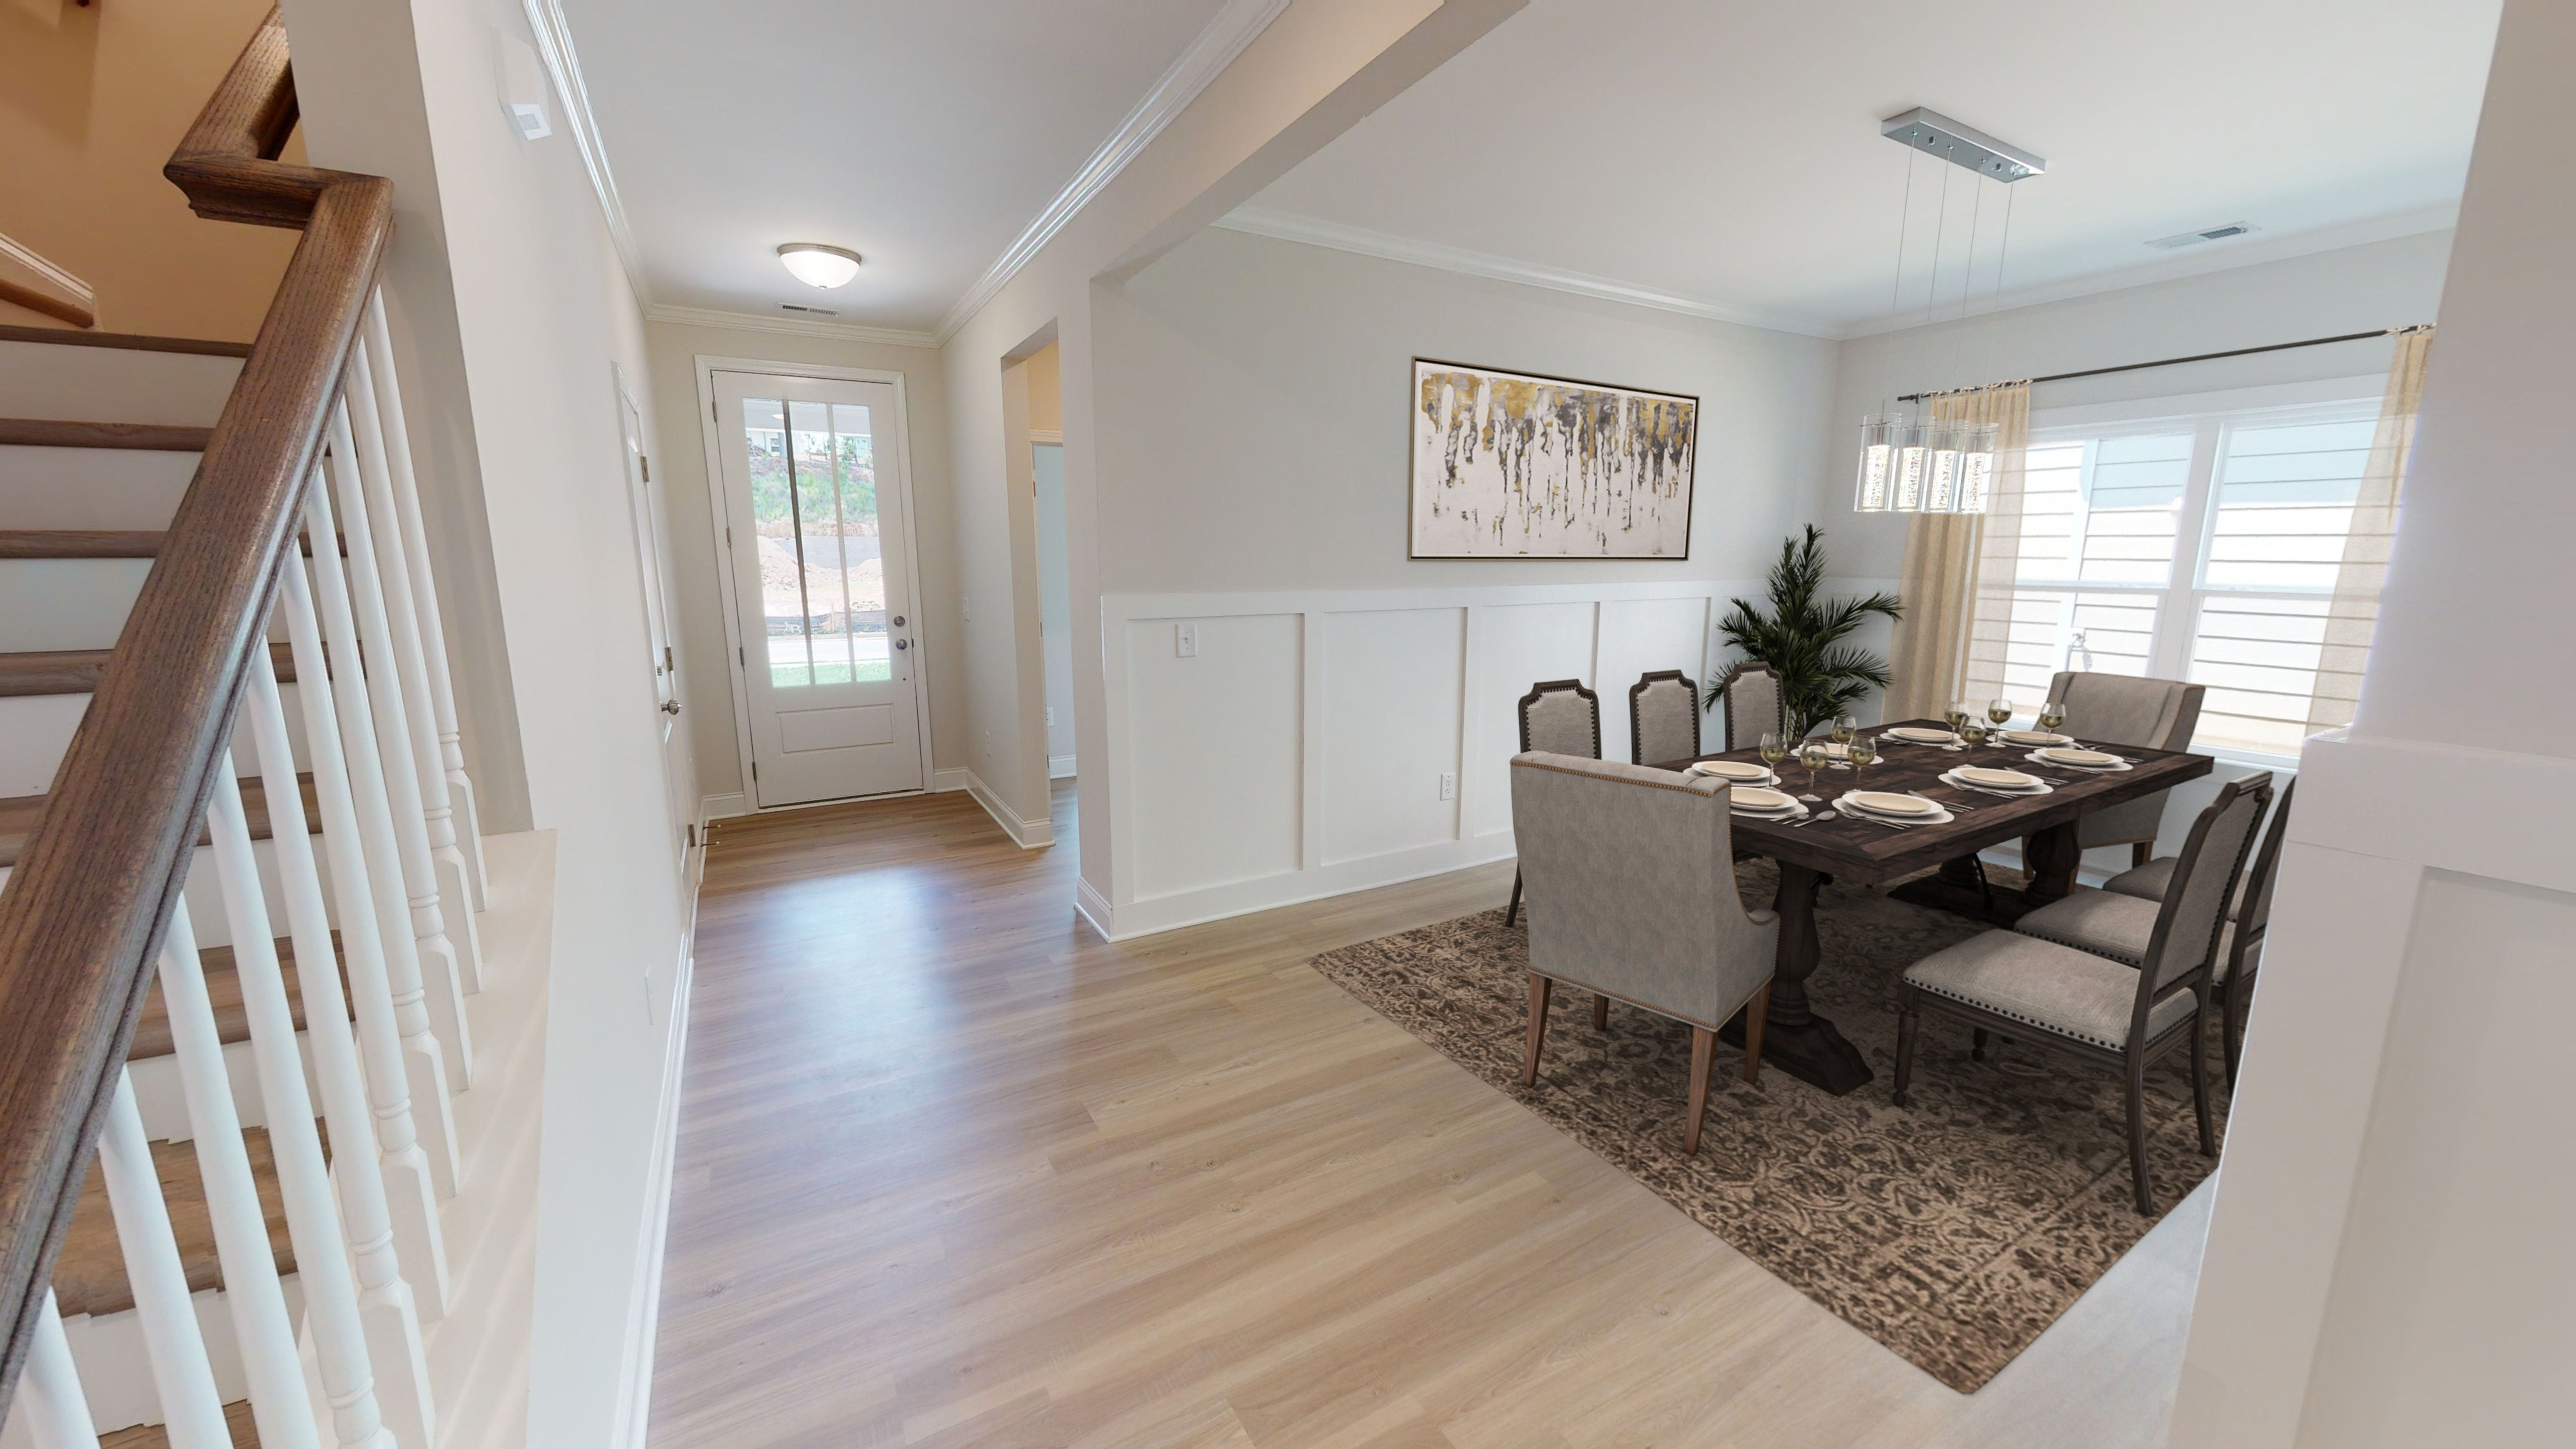 Living Area featured in the Chamblee (Active Adult) By Artisan Built Communities in Atlanta, GA